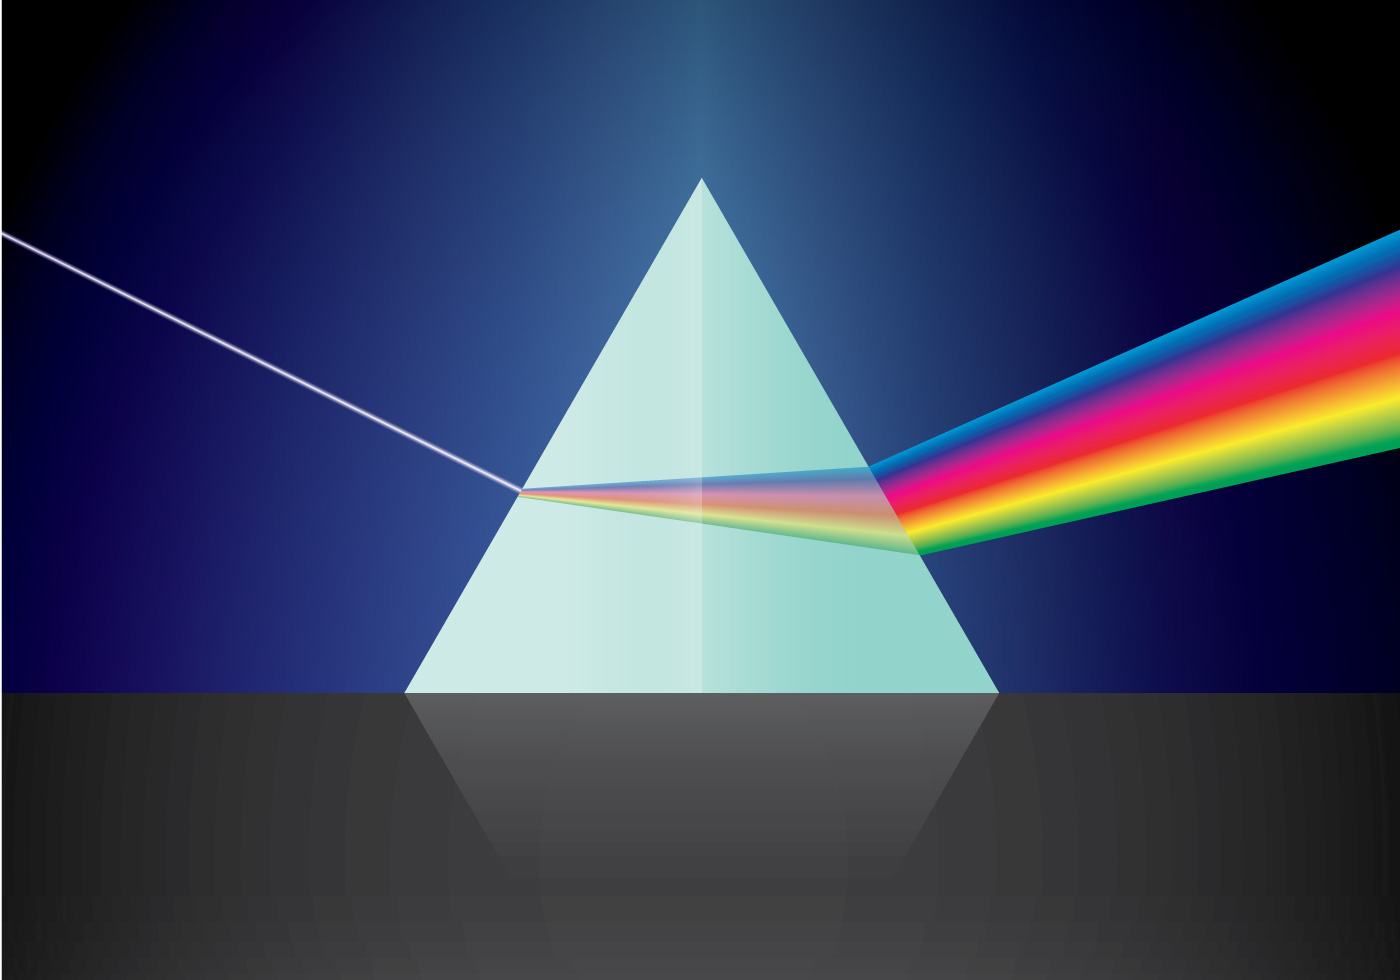 Triangular Prism and Light - Download Free Vector Art ...